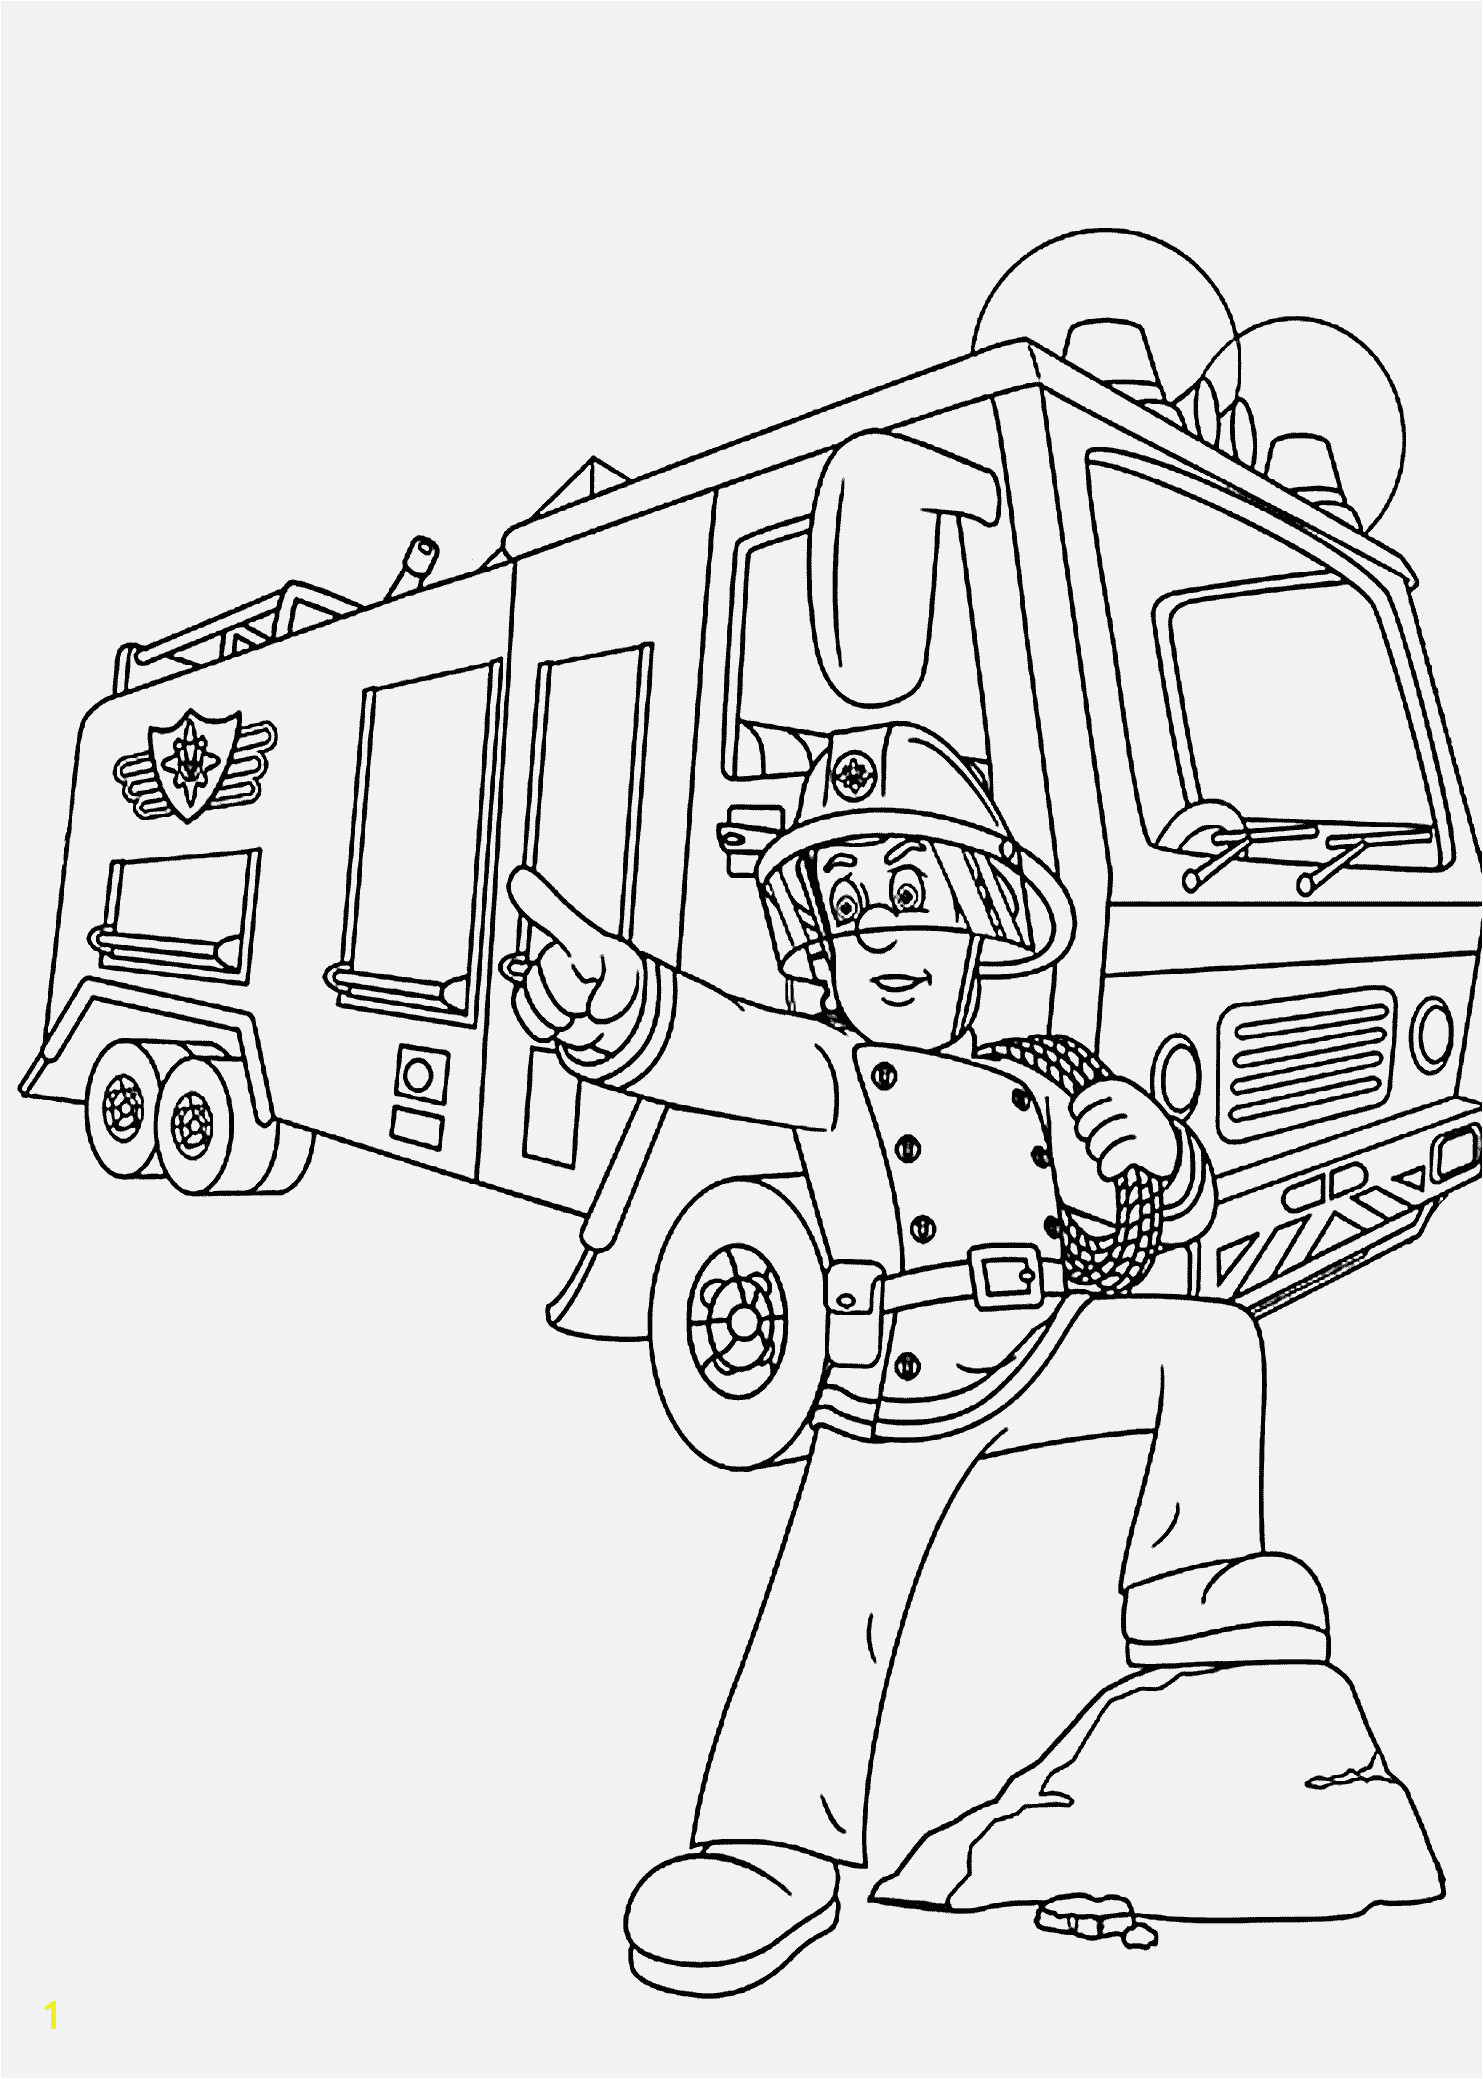 Feuerwehrmann Sam Malvorlage Spannende Coloring Bilder Firetruck Coloring Pages for Kids Printable Free Pinterest